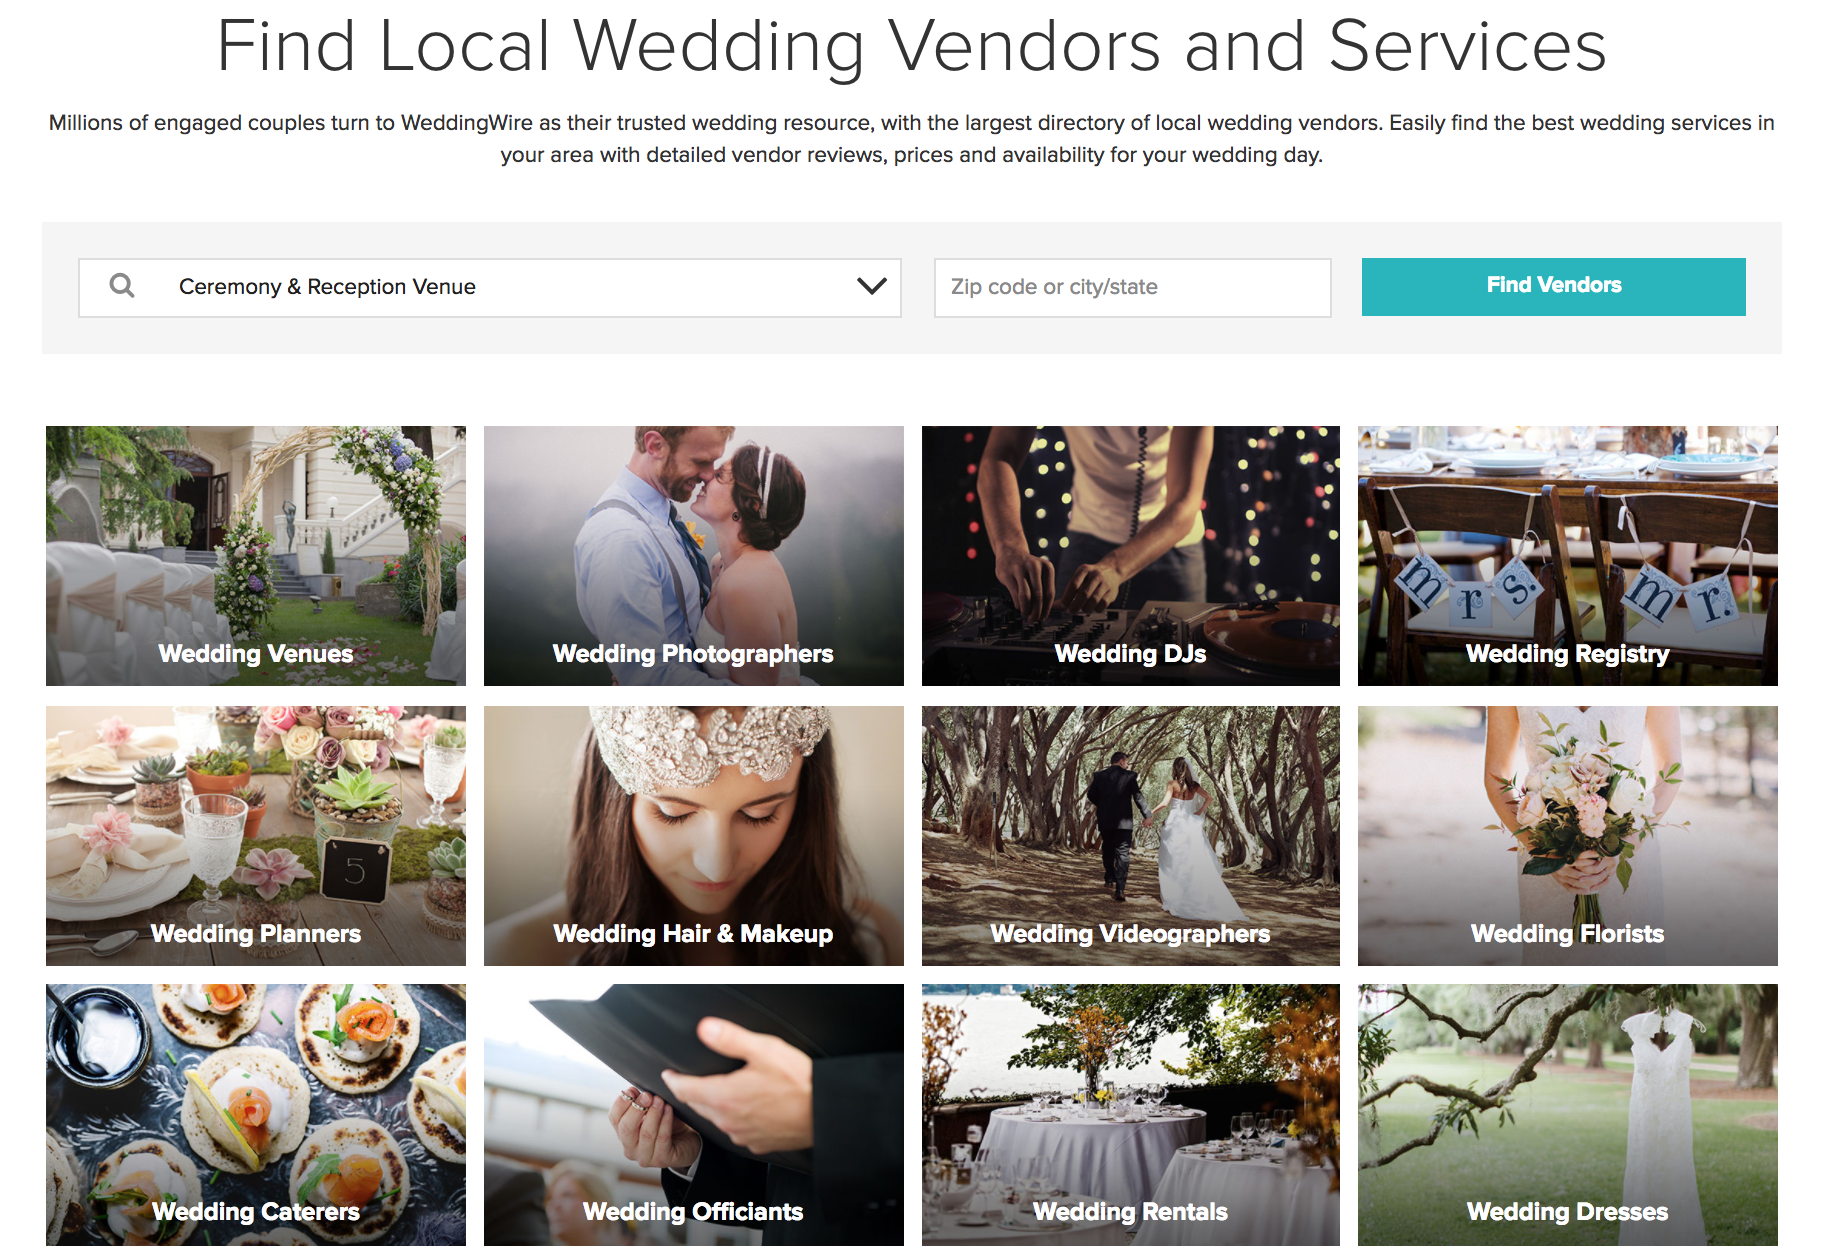 How WeddingWire Helped Me Plan My Wedding In 3 Months Esther Santer Fashion Blog NYC Street Style Blogger Outfit OOTD Trendy Hair Makeup Beauty Wedding Planning Dress Gown Prep Budget Tool Registry Vendors Florist Band Venue Videographer Photographer.png